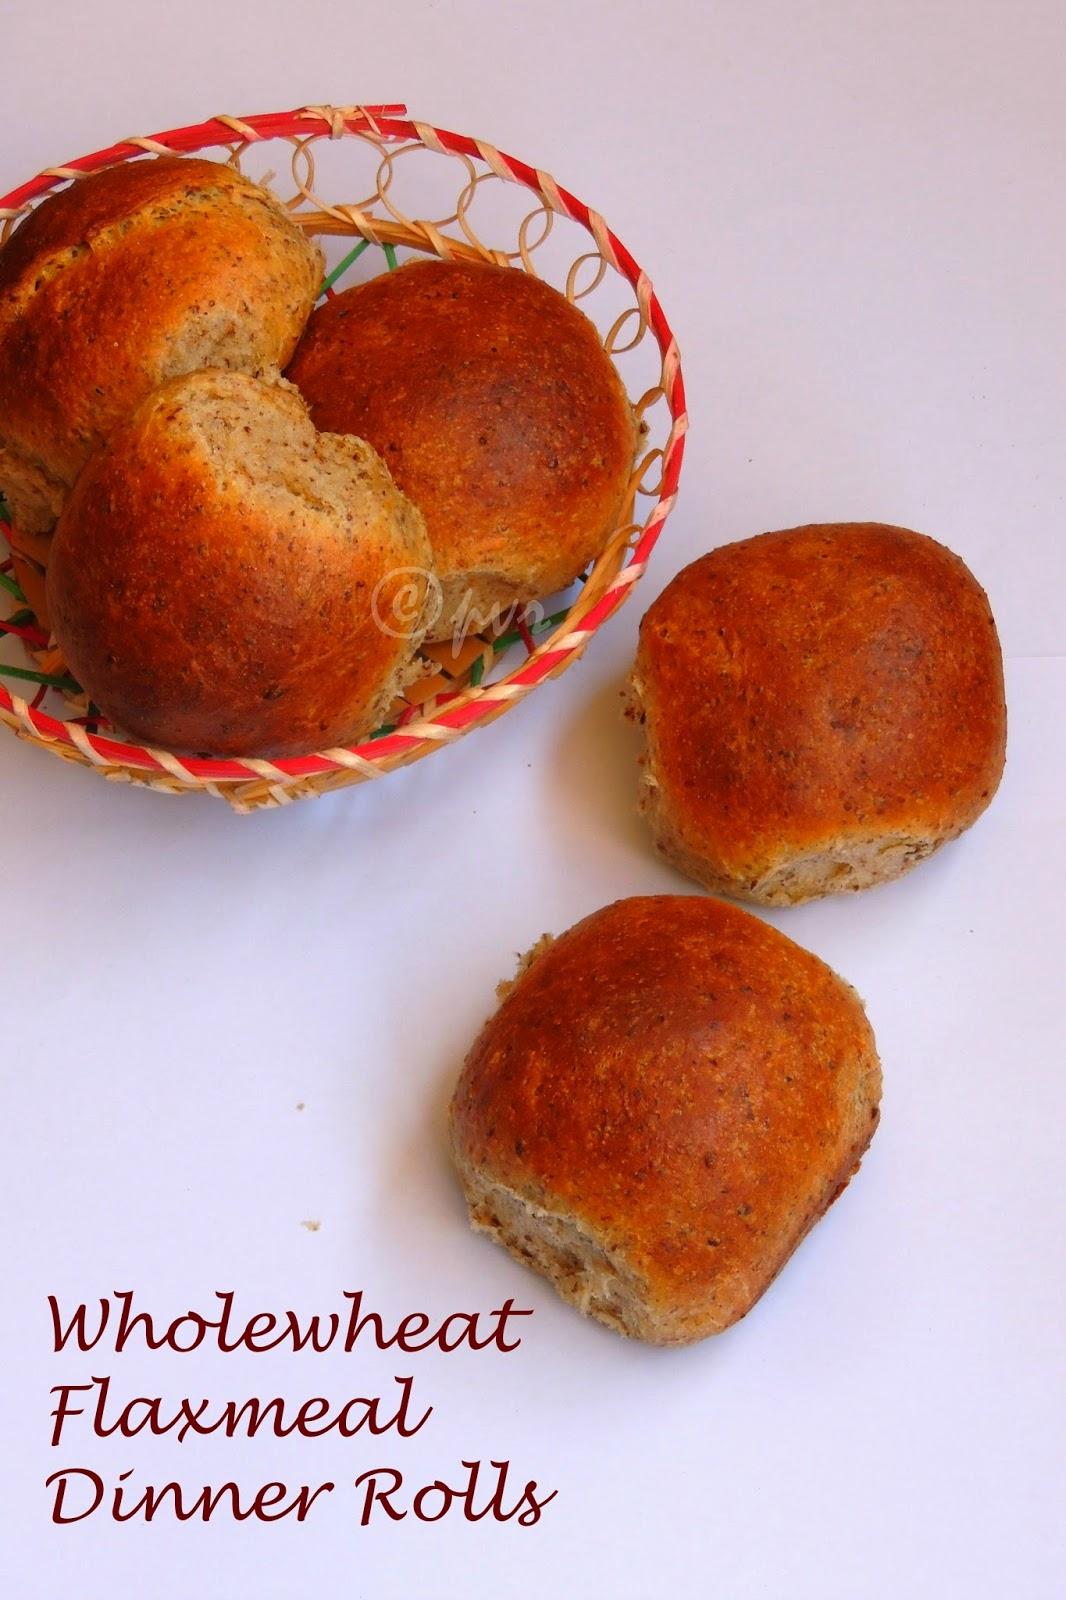 No Butter Wholewheat flaxmeal Dinner Rolls